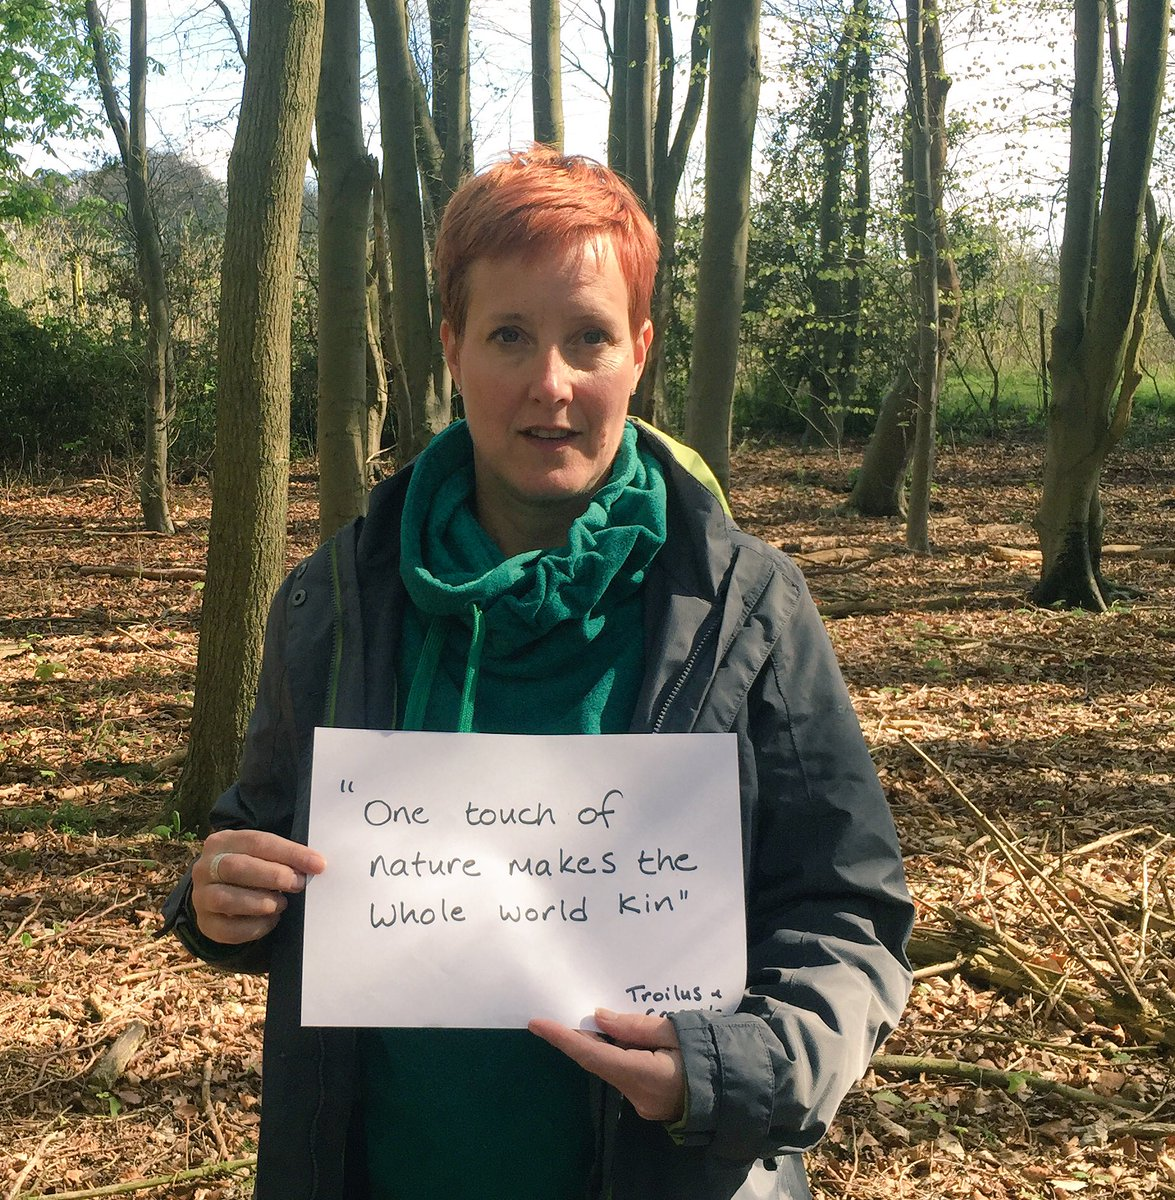 """One touch of nature makes the whole world kin"" #Shakespeare400 #Shakespeare16 @hantslibraries https://t.co/WNewQdy6sd"